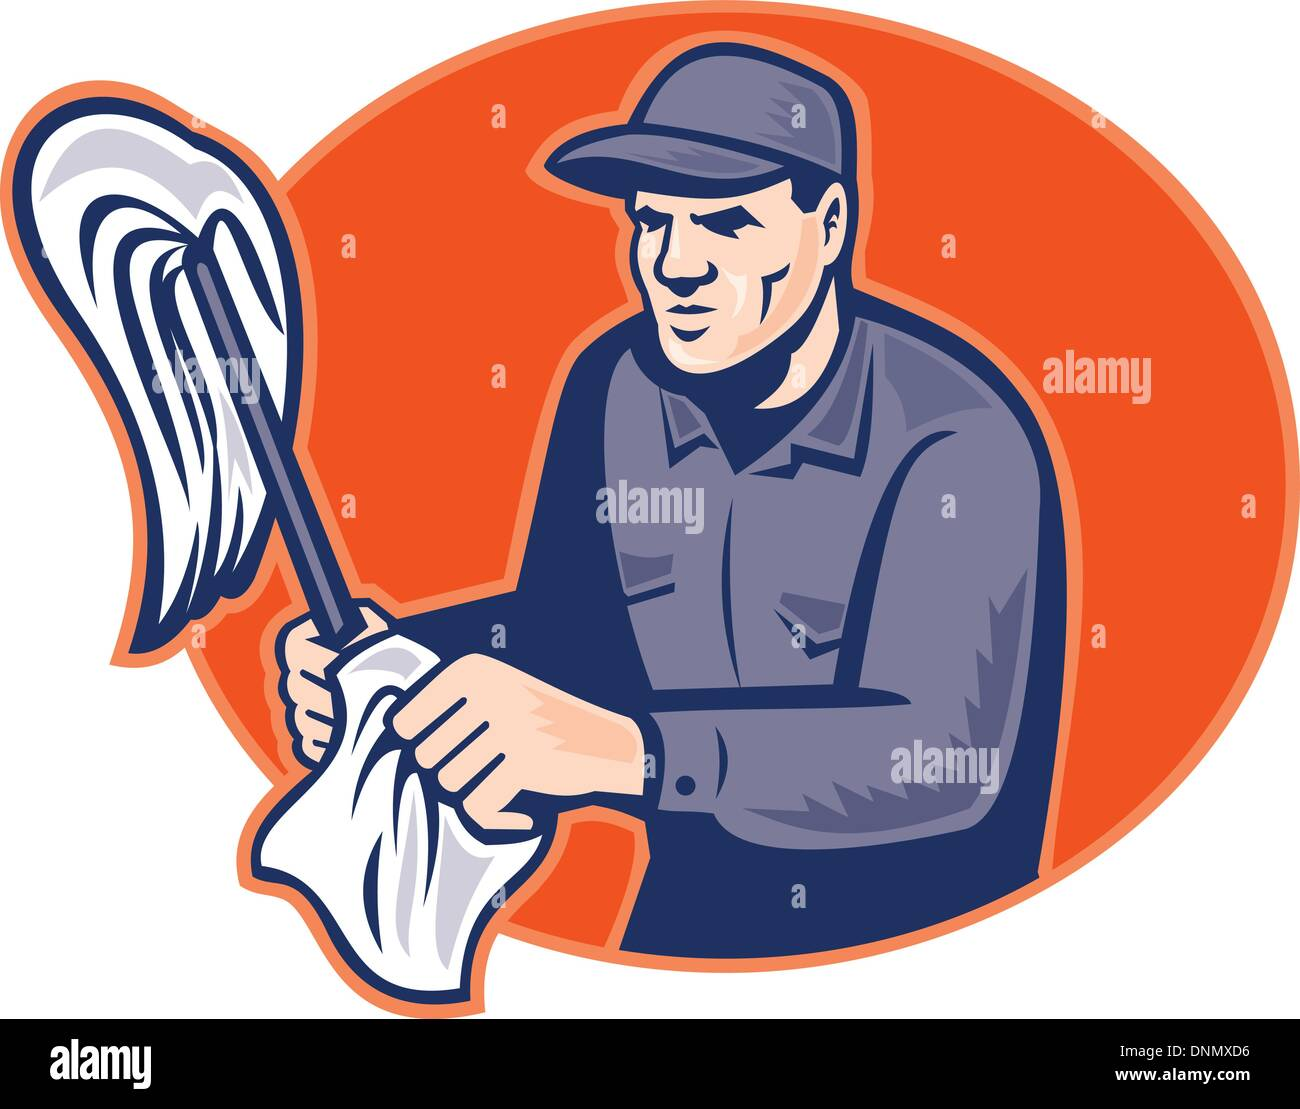 illustration of a cleaner janitor holding a cleaning mop and wipe set inside ellipse done in retro woodcut style. - Stock Vector